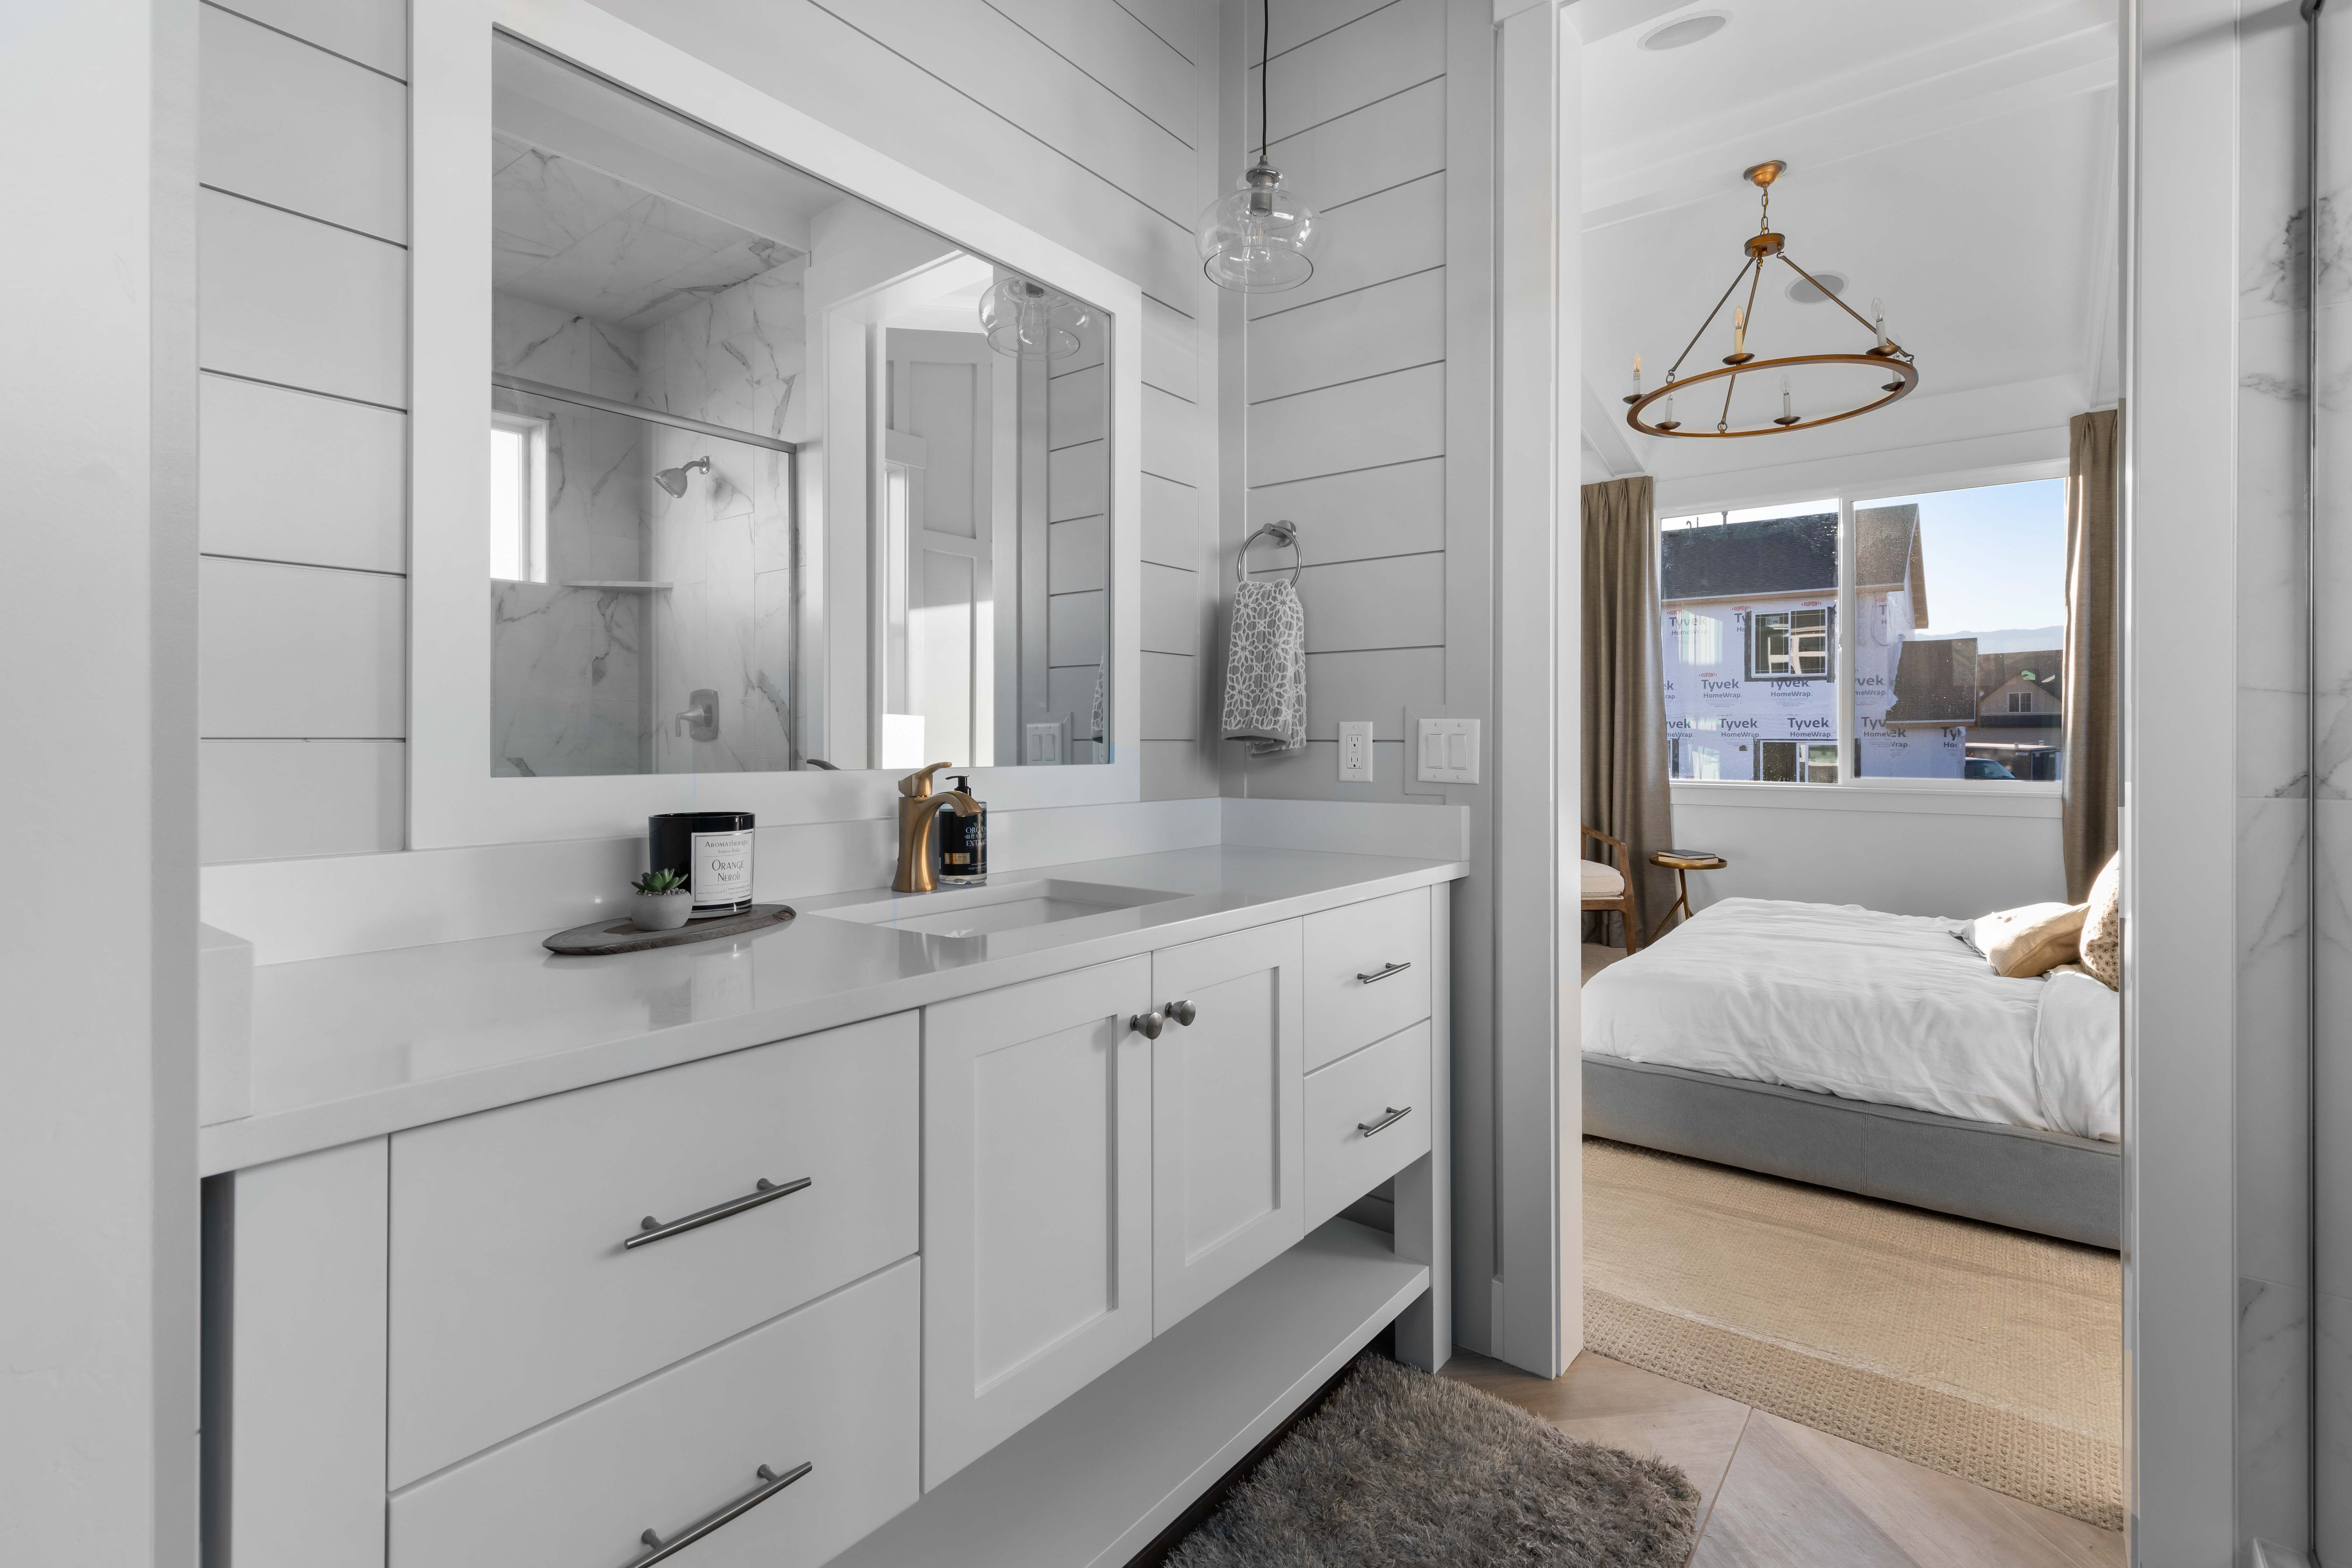 Bathroom featured in the Sumac (SOG)  By Visionary Homes in Logan, UT